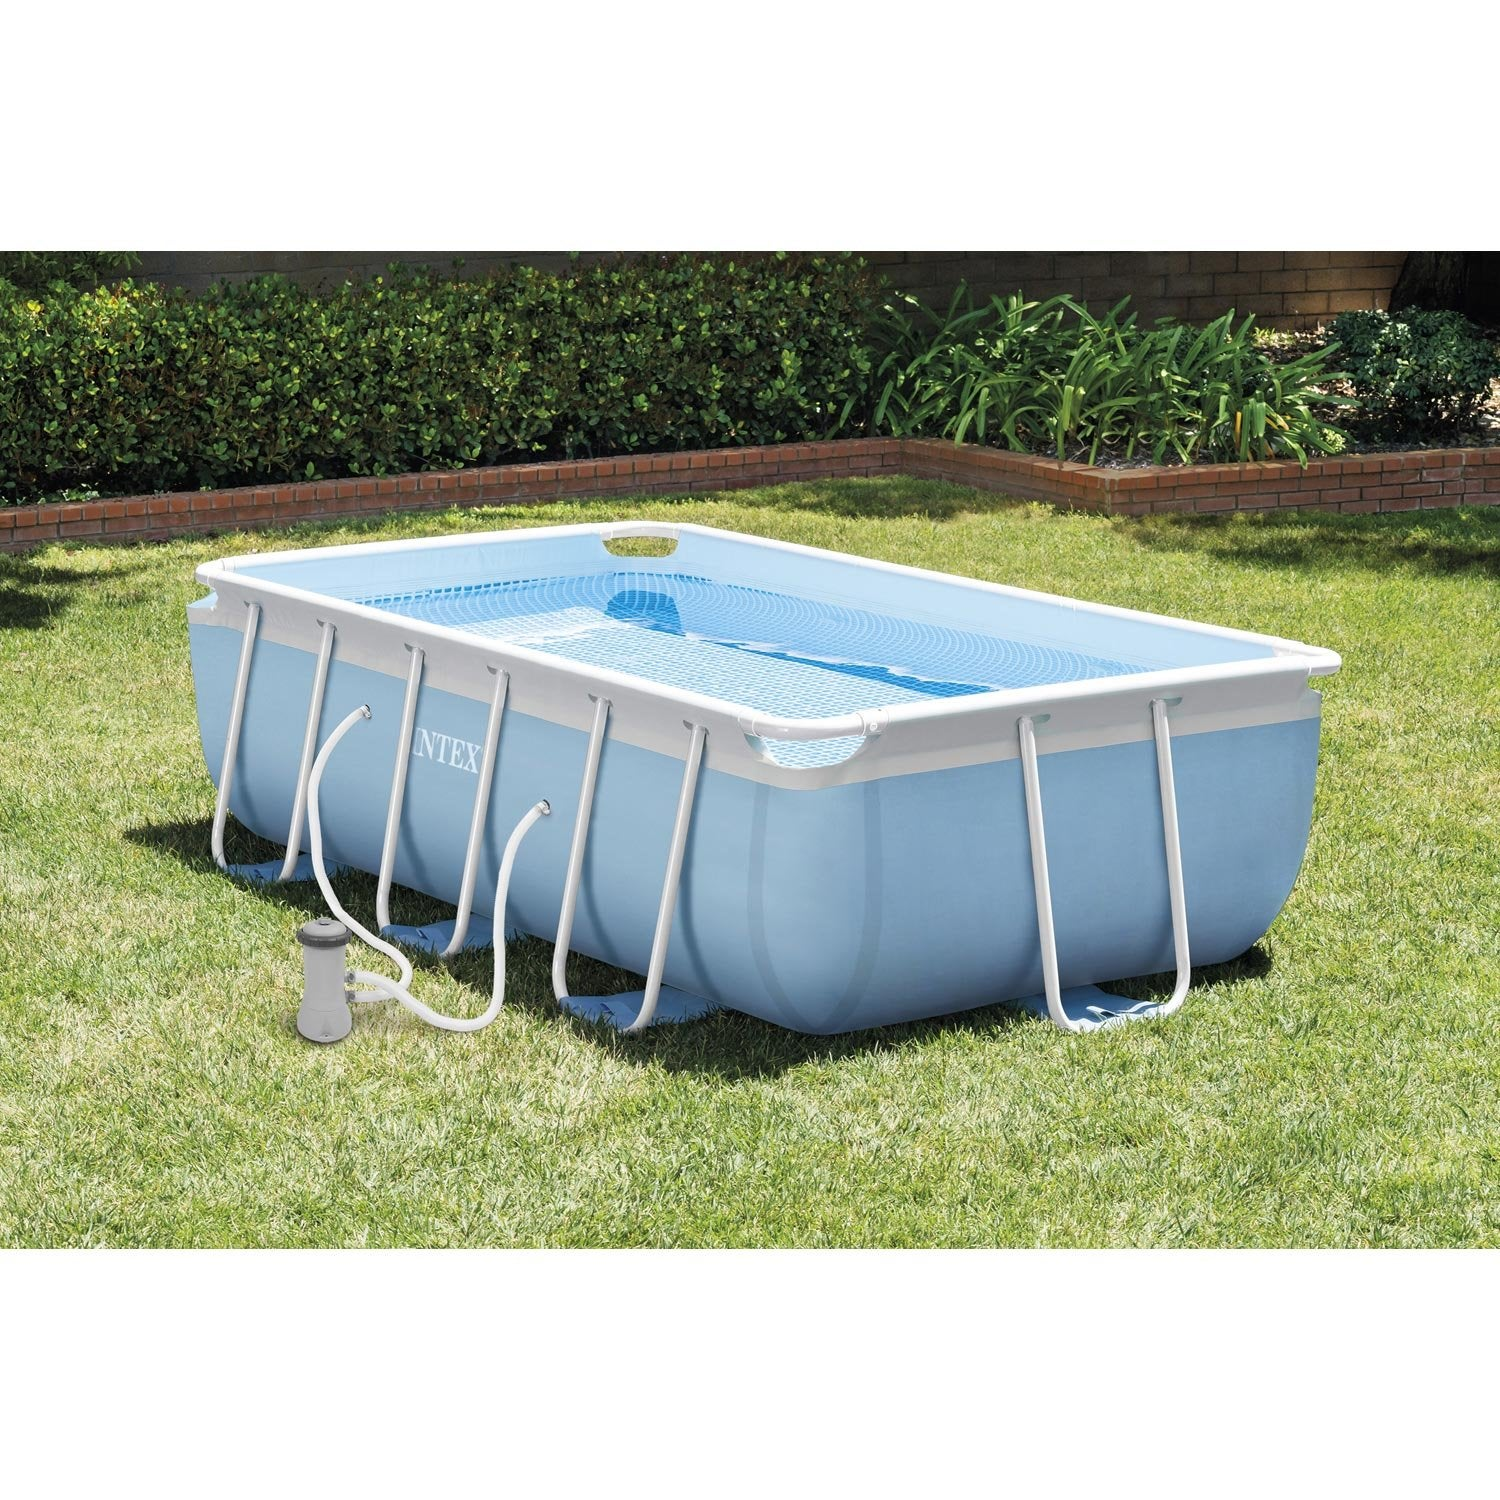 Piscine hors sol autoportante tubulaire intex l 3 4 x l 2 for Piscine portable carrefour